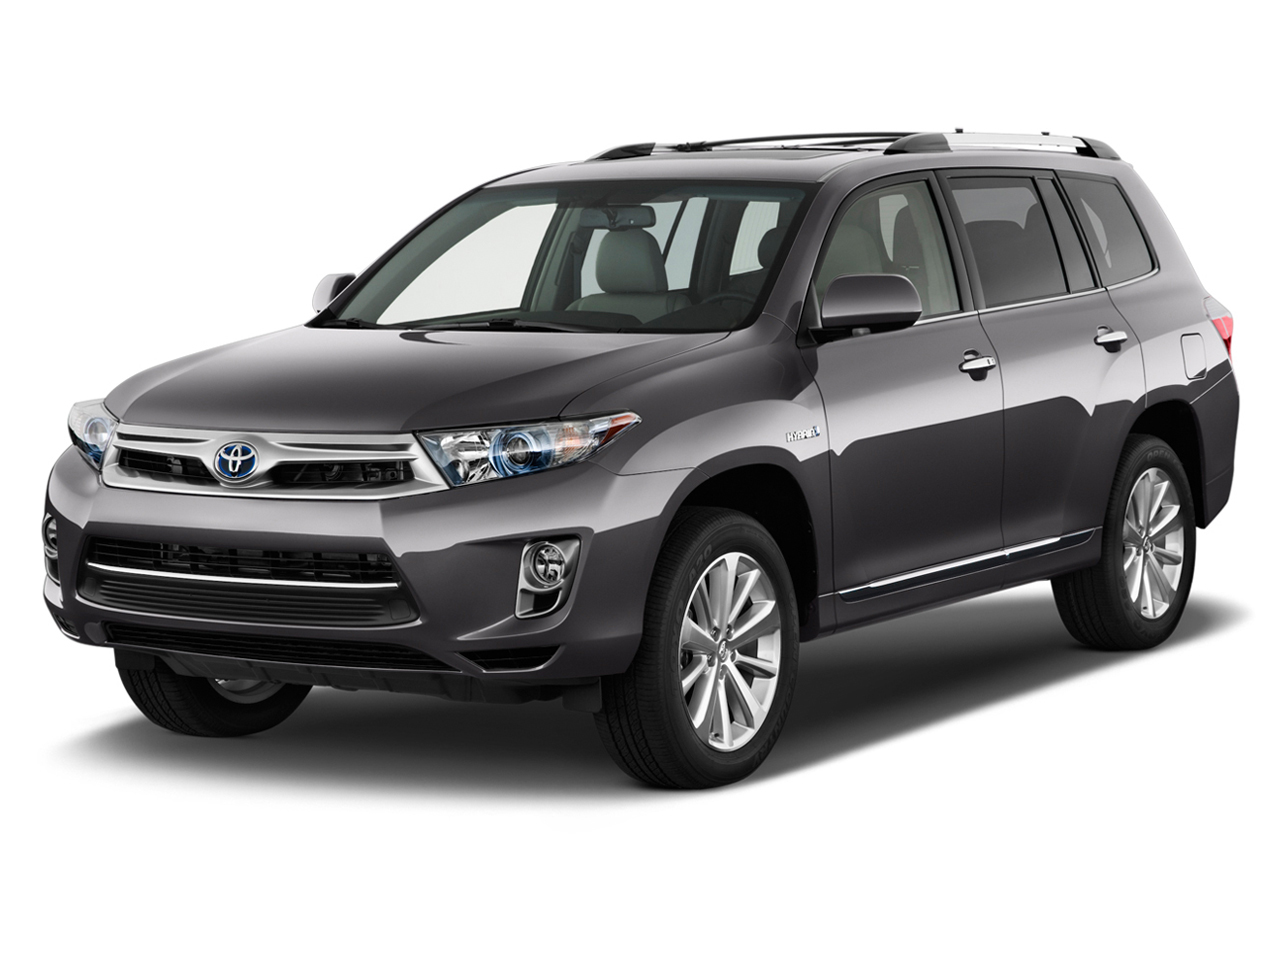 2011 toyota highlander hybrid green 200 interior and exterior images. Black Bedroom Furniture Sets. Home Design Ideas